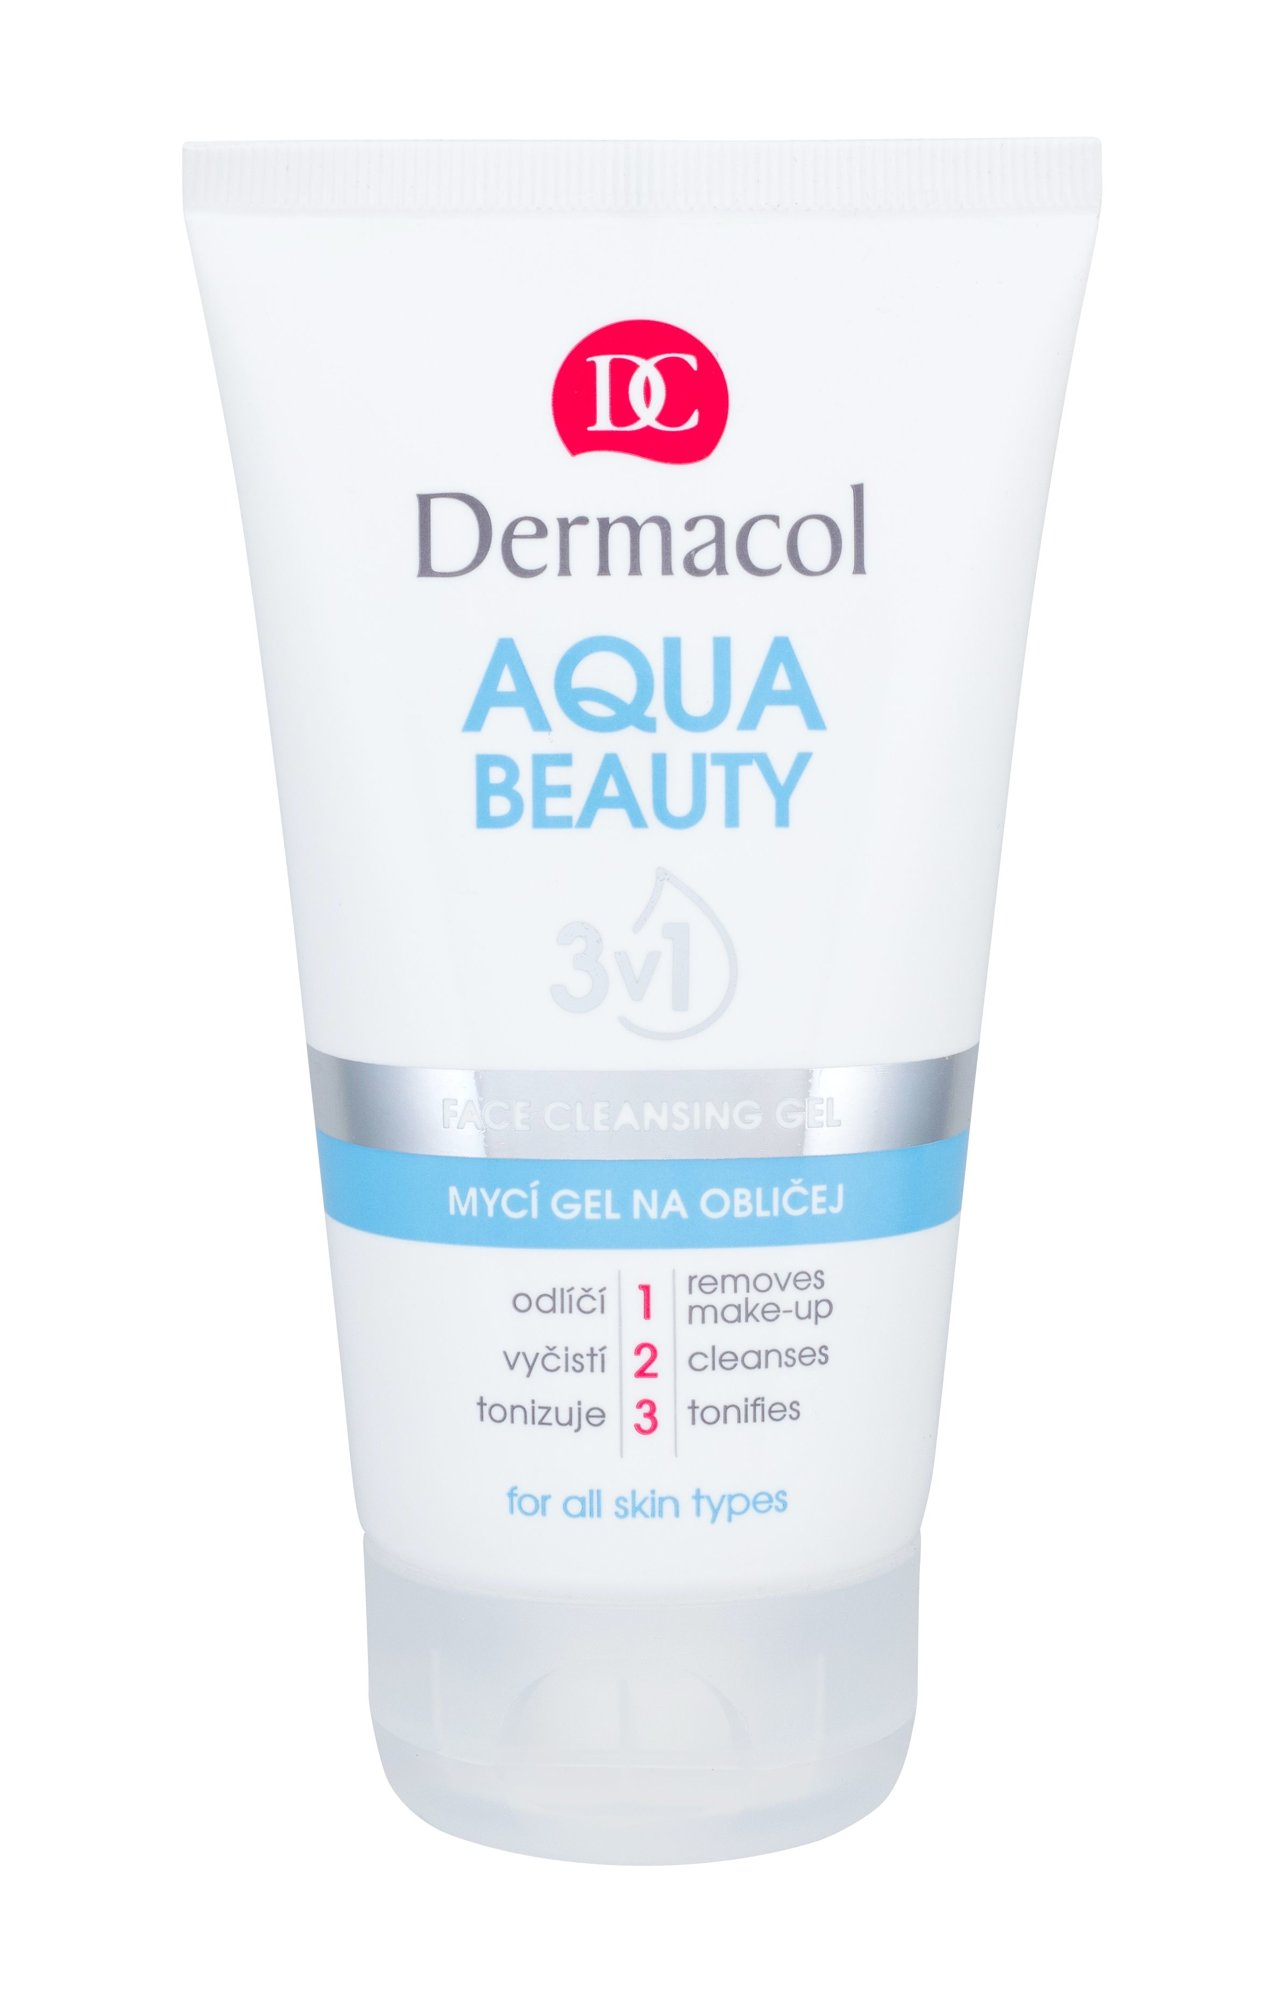 Dermacol Aqua Beauty Cosmetic 150ml